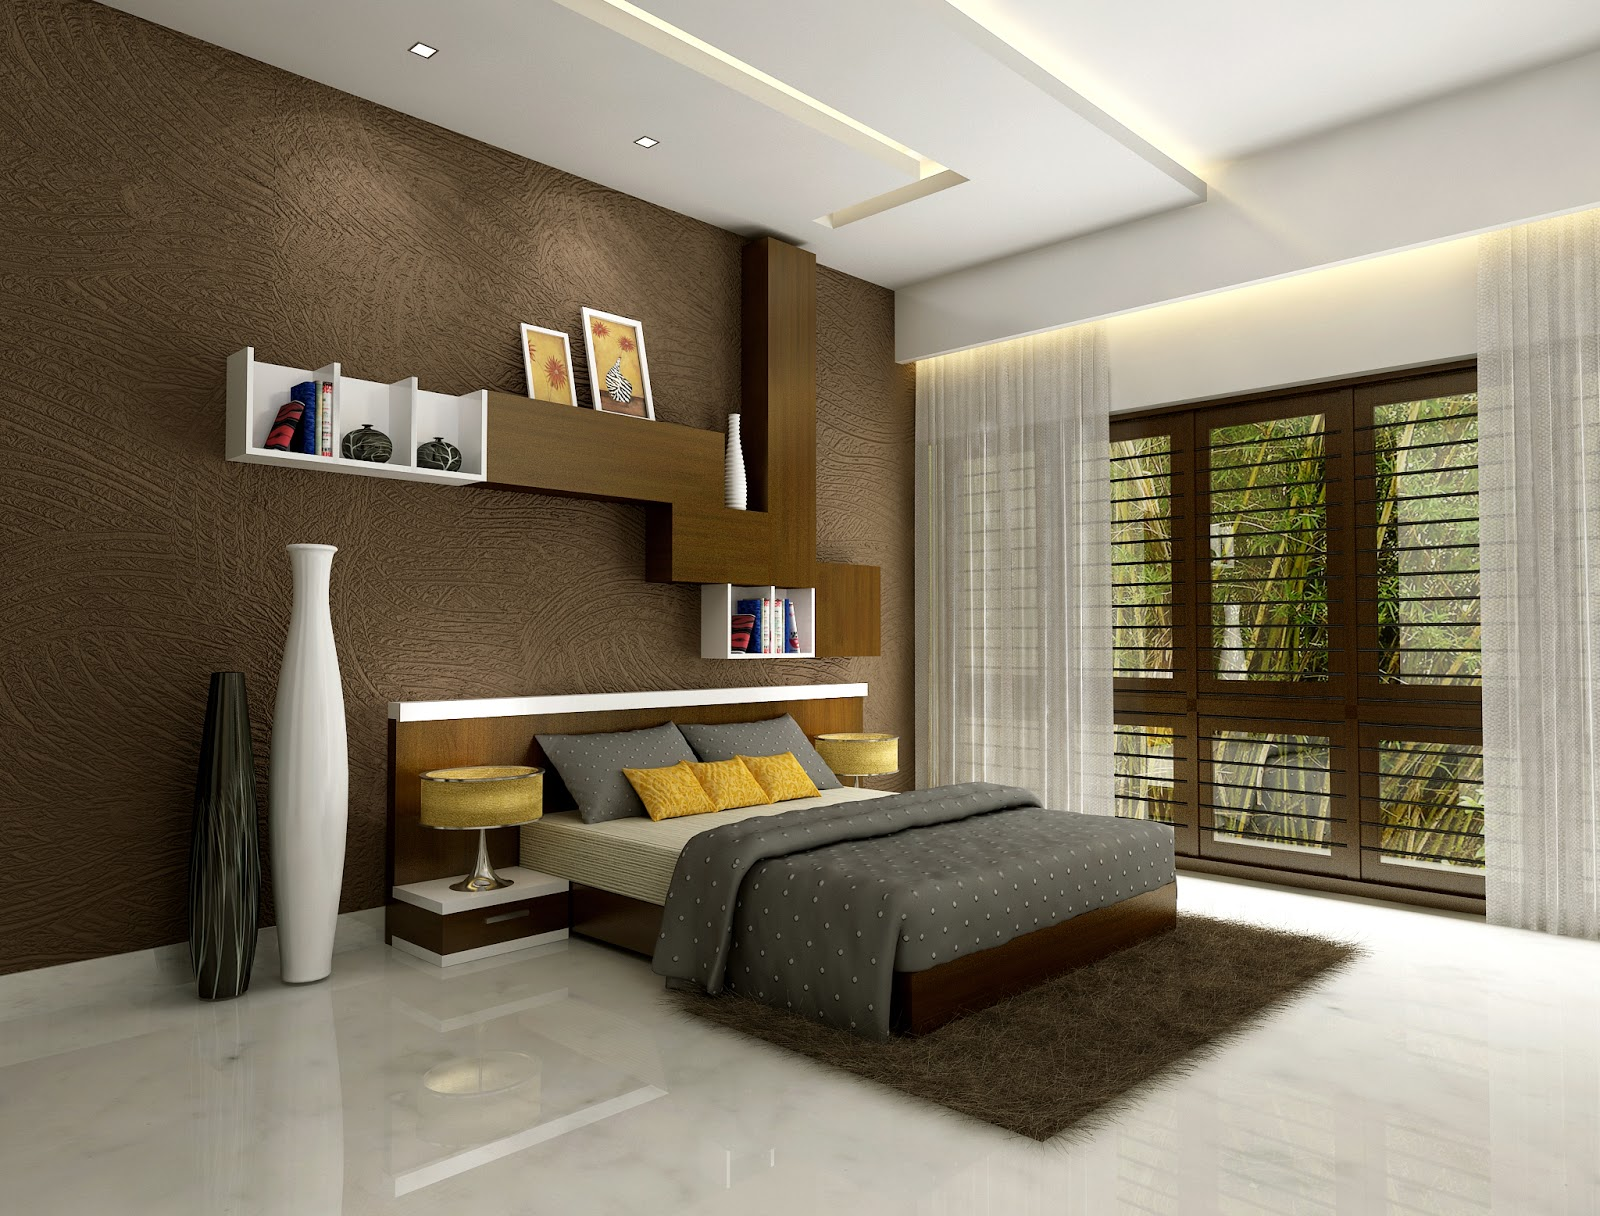 Bedroom In Modern Style 68 Photos Interior Design White Italian Modular Bedroom